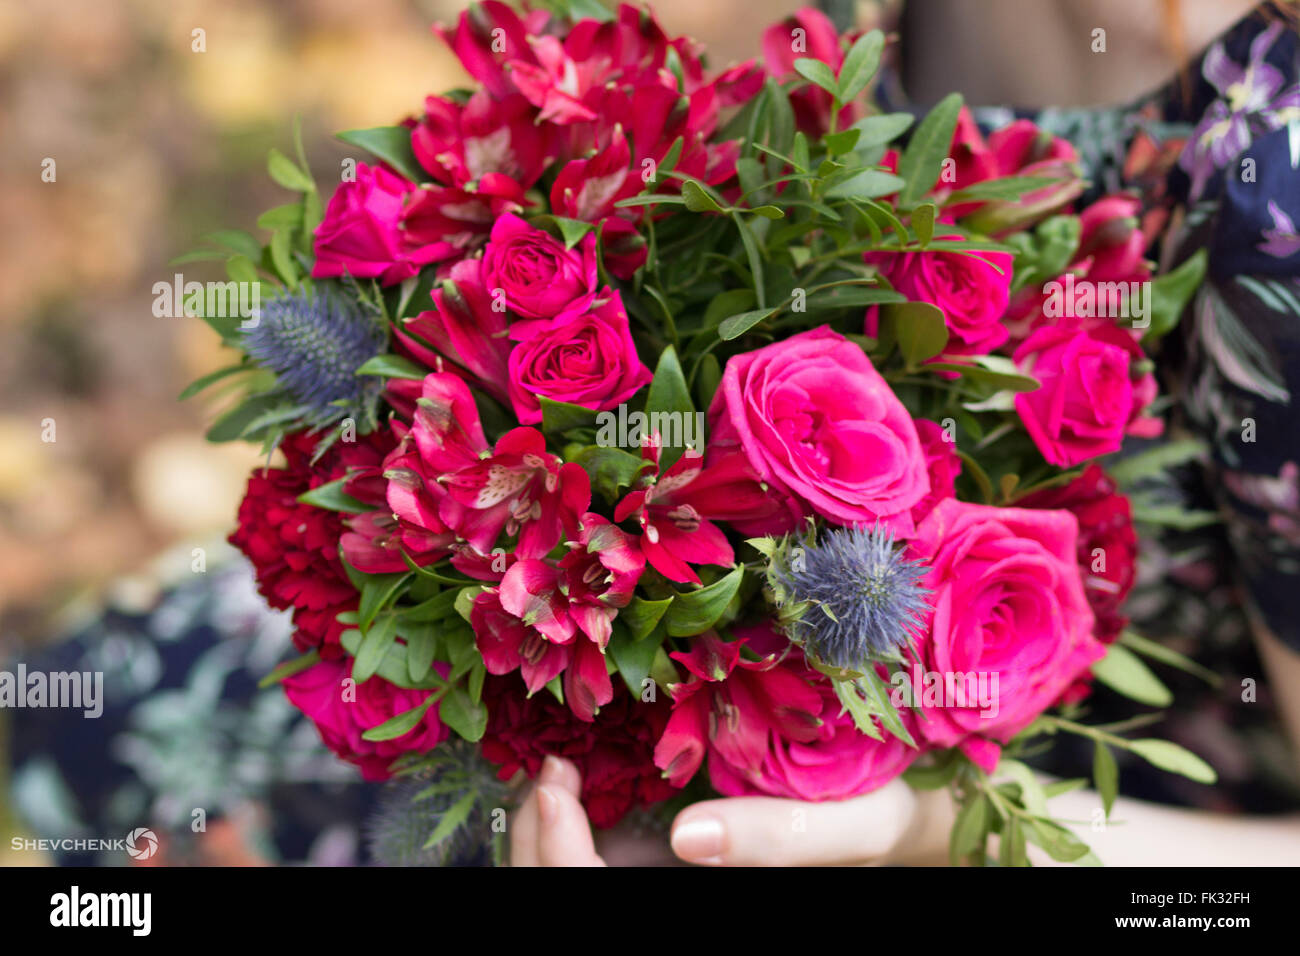 Pale dusty pink flowers stock photos pale dusty pink flowers stock nice bouquet with pink and fuchsia flowers stock image mightylinksfo